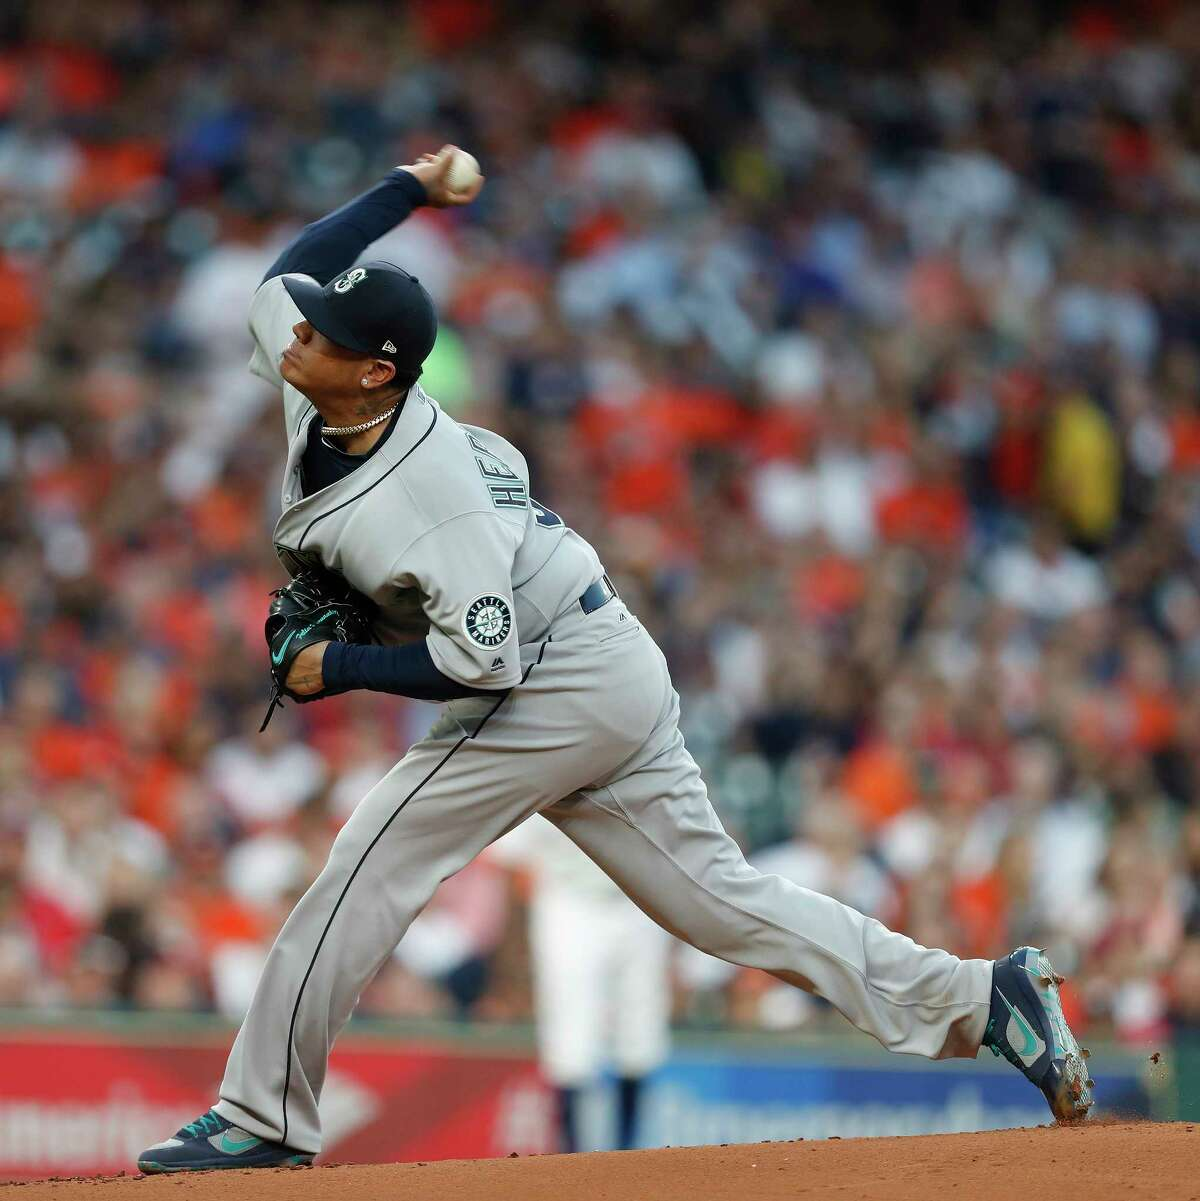 Seattle Mariners starting pitcher Felix Hernandez (34) pitches in the first inning of the Houston Astros at Minute Maid Park, Friday, March 31, 2017, in Houston.